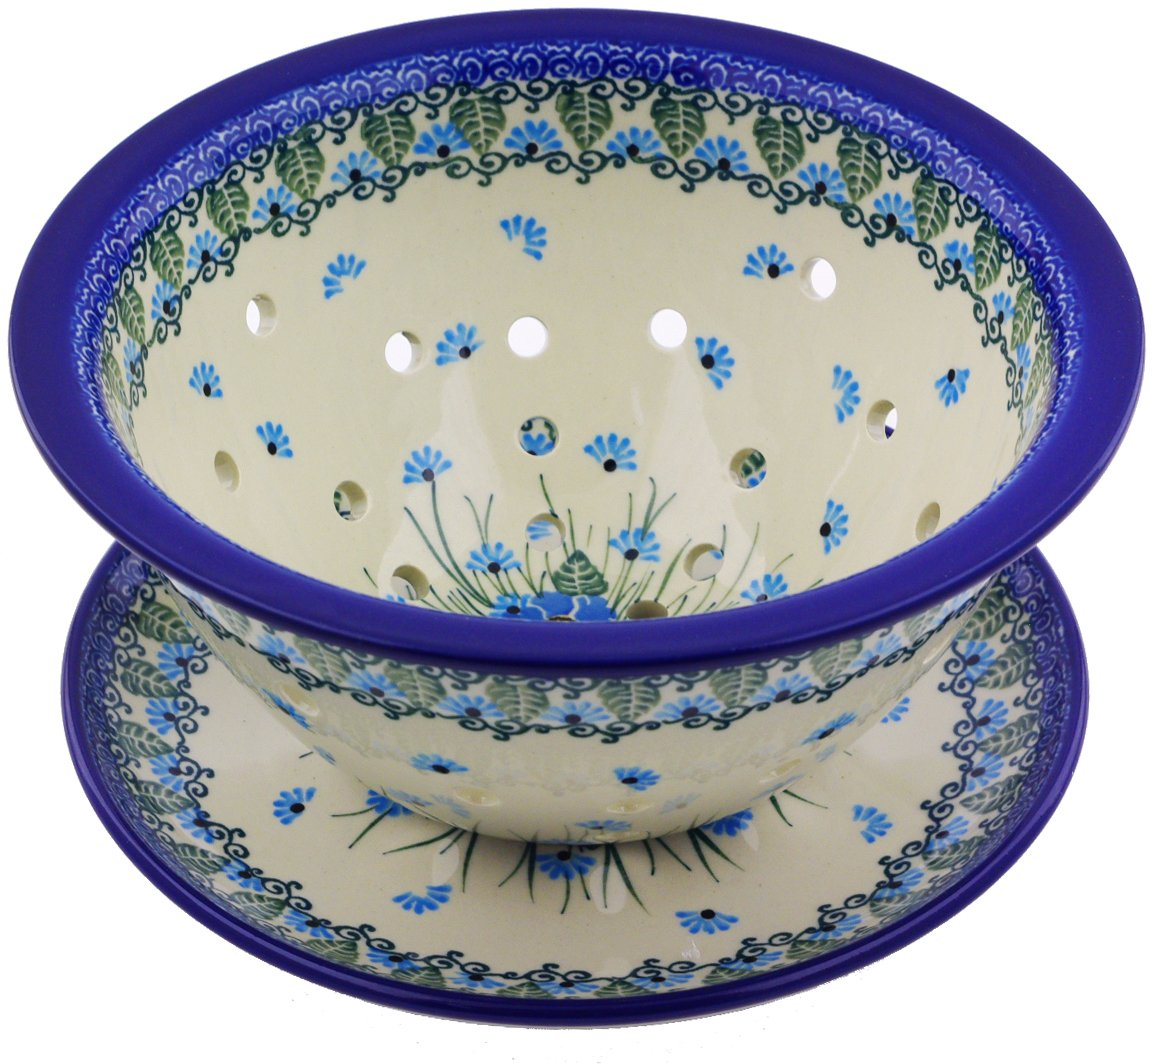 Polish Pottery Colander with Plate 8-inch made by Ceramika Artystyczna (Forget Me Not Theme)